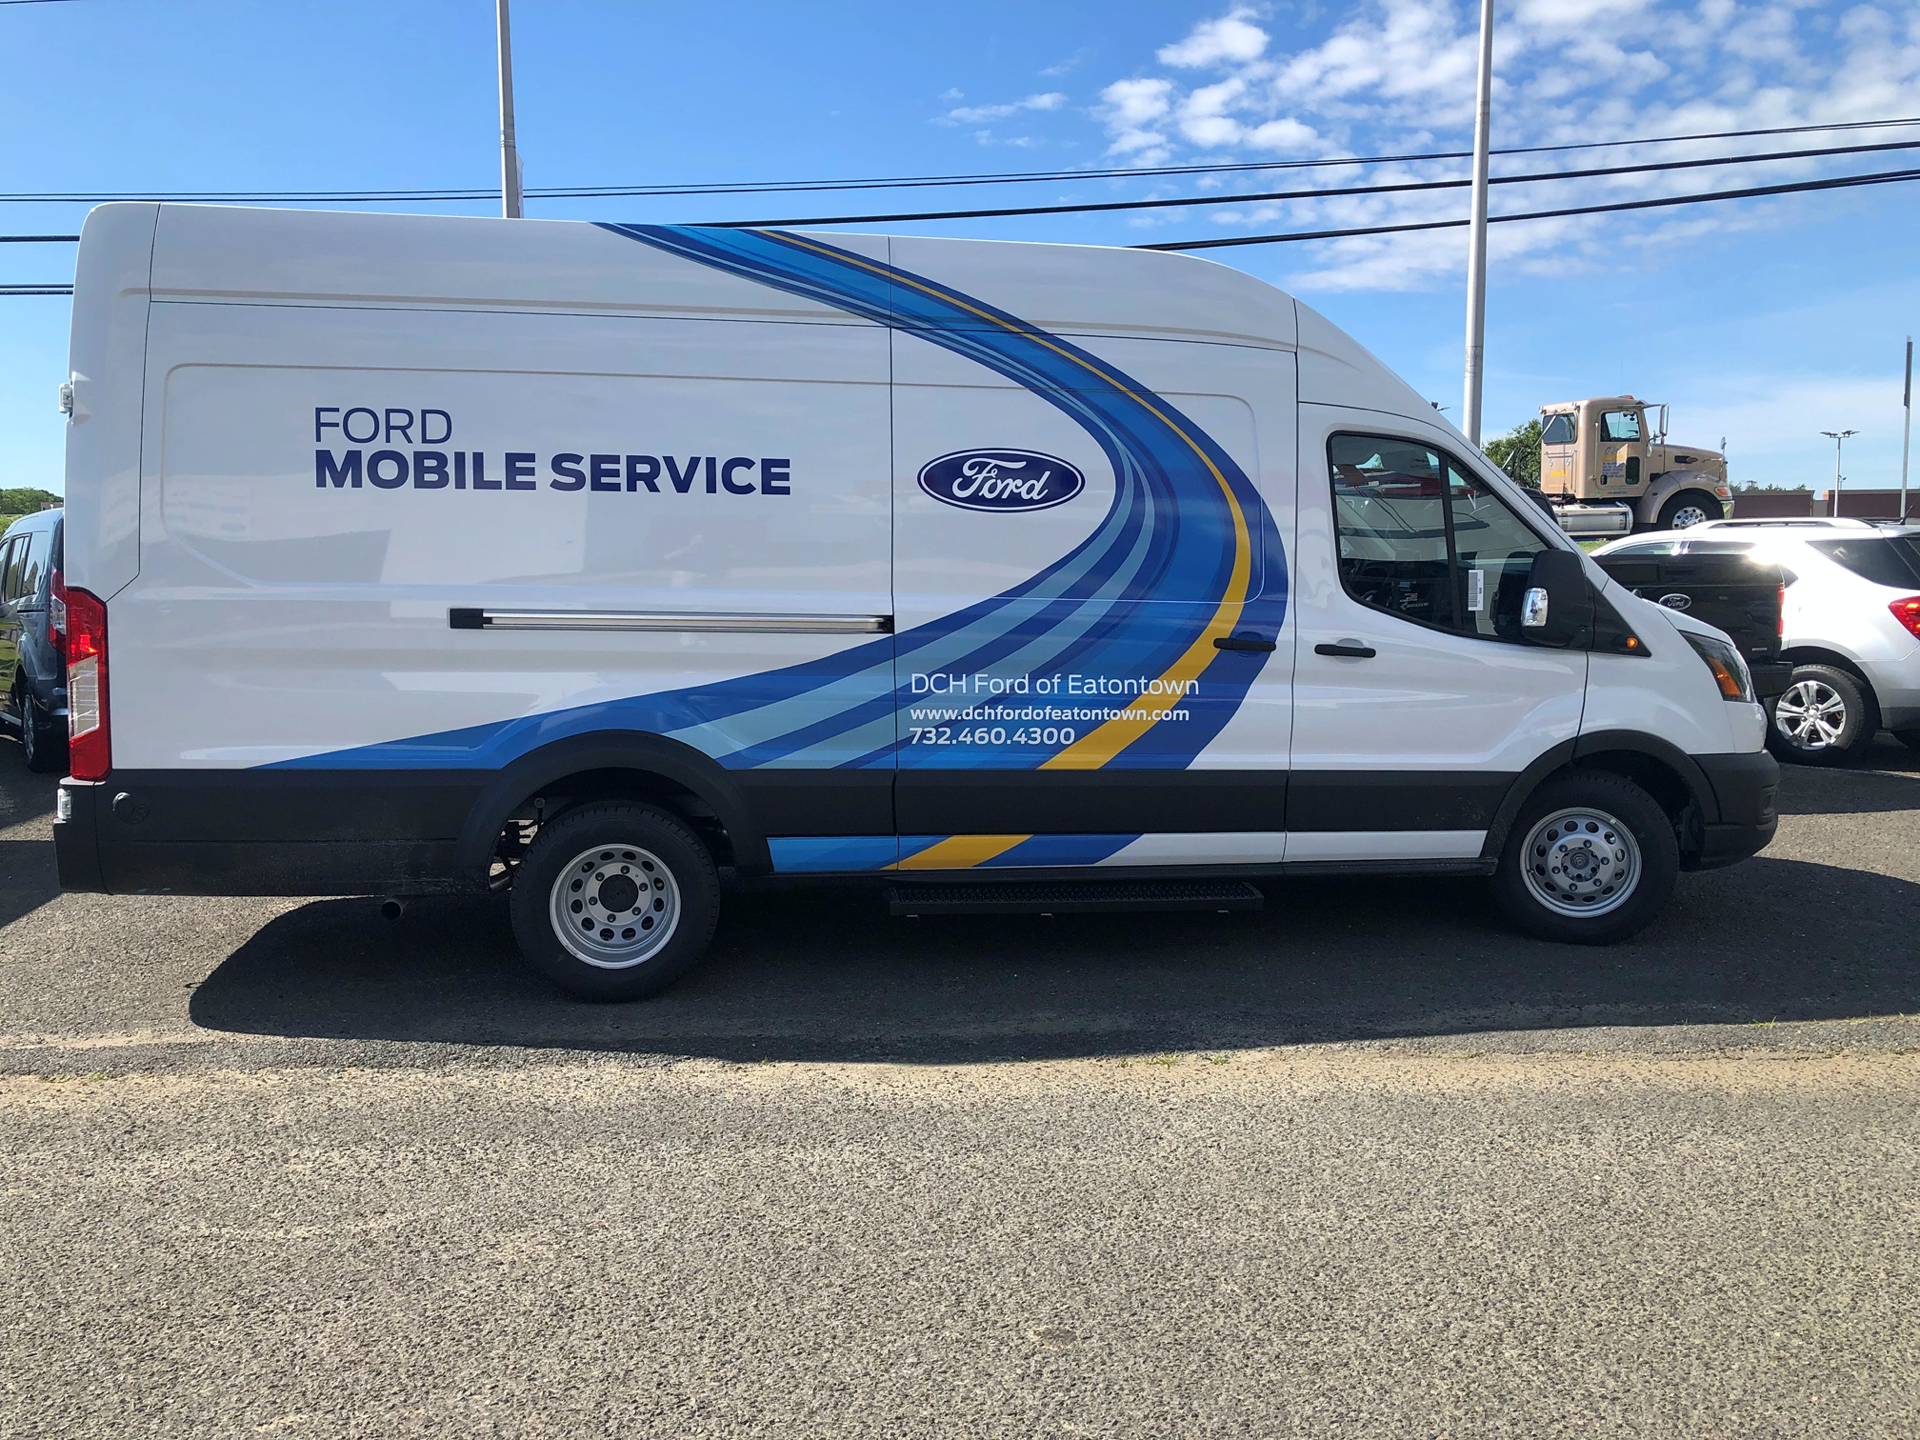 DCH-Ford-Mobile-service van parked in lot